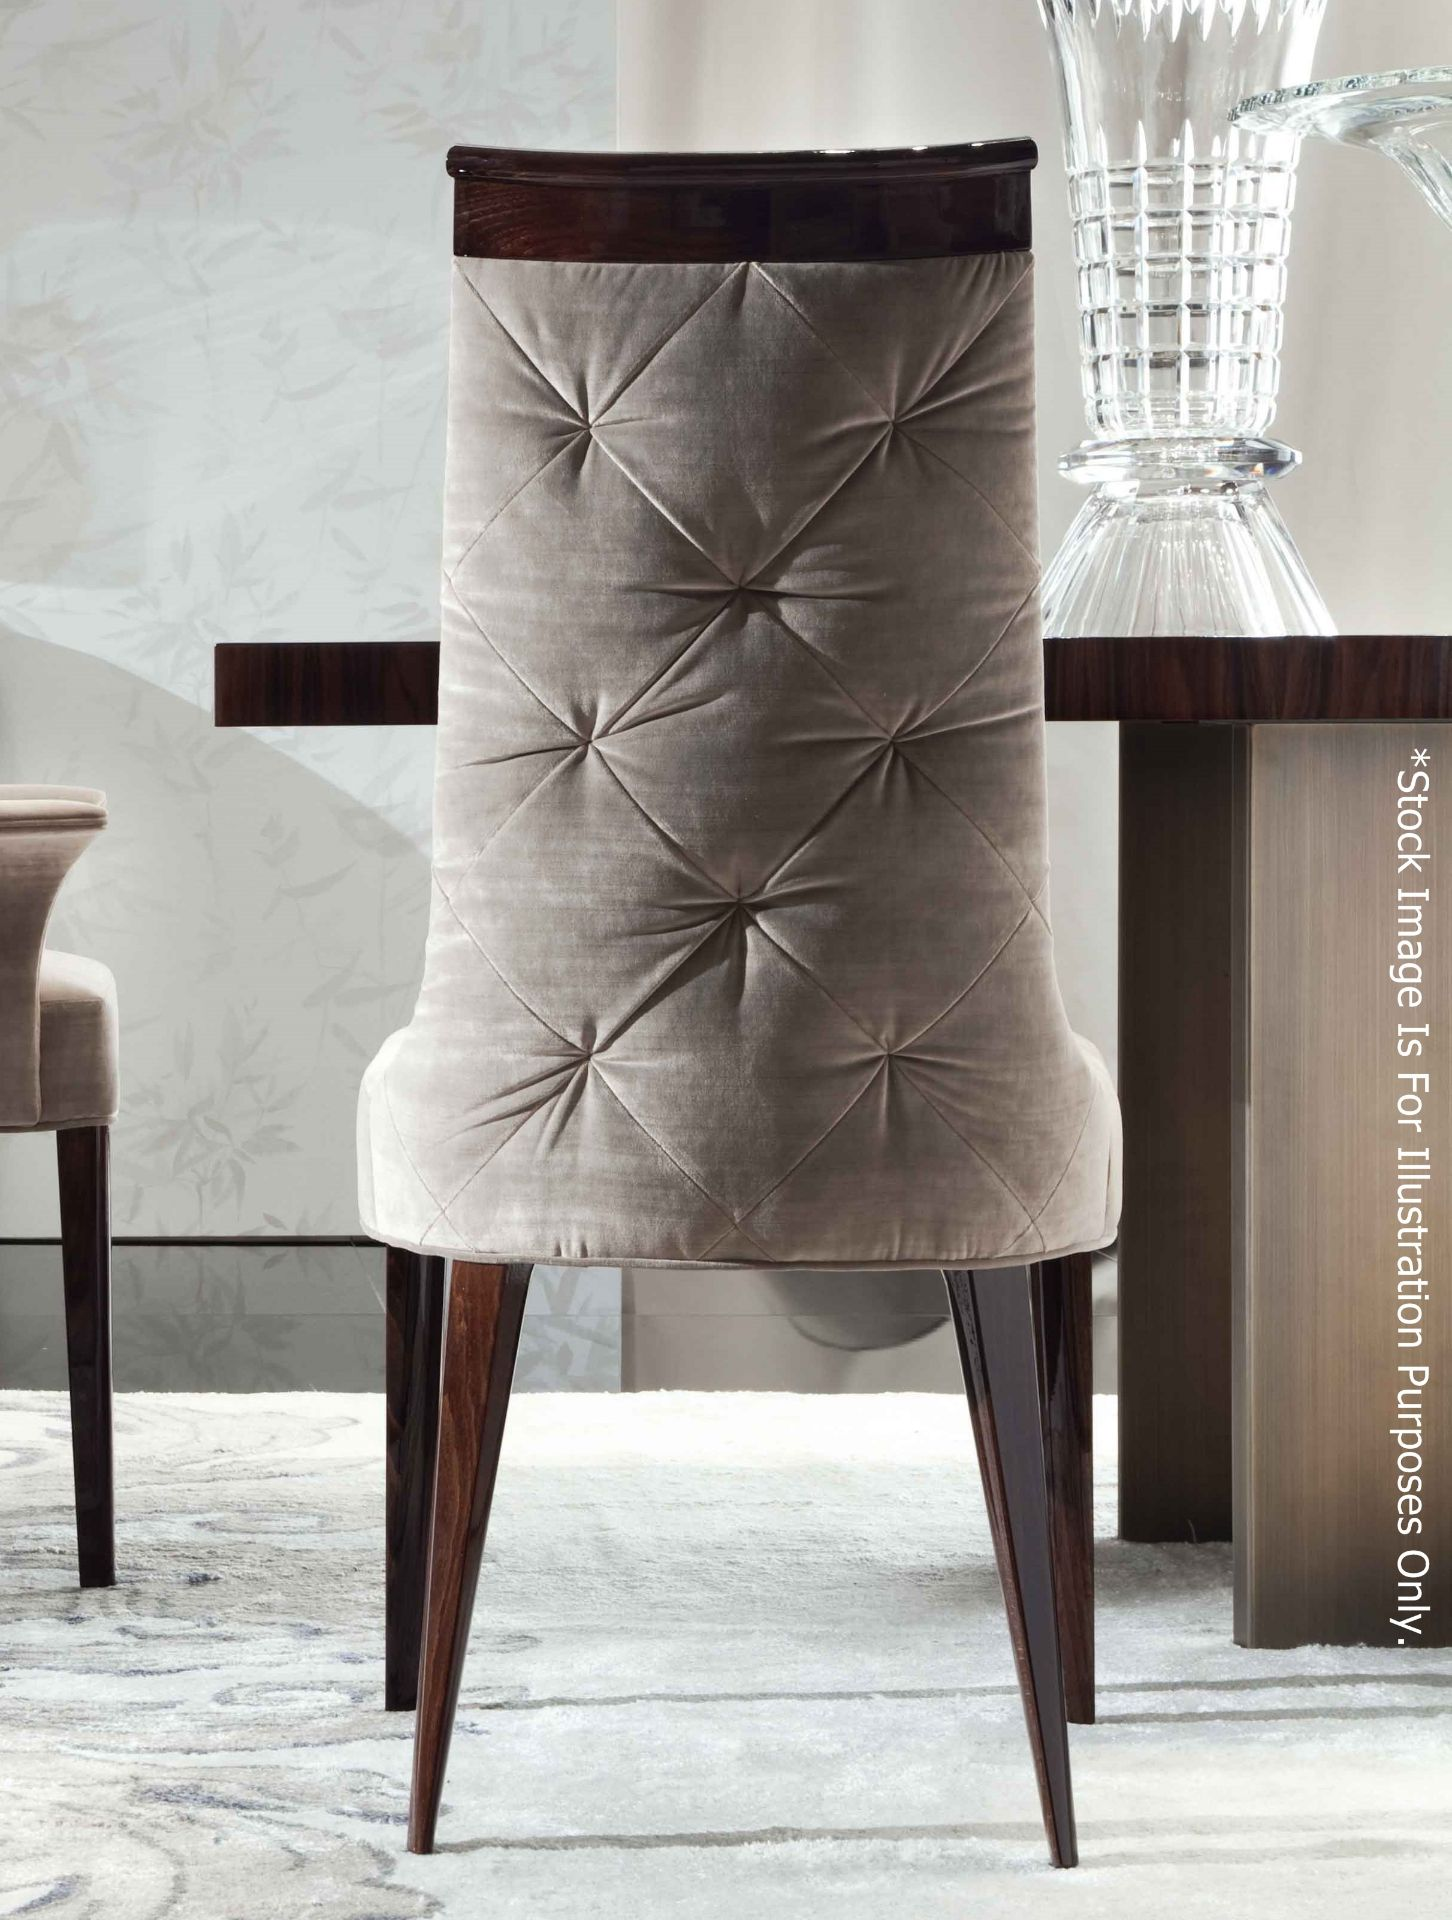 4 x GIORGIO Coliseum Velvet Upholstered Button Back Side Chairs With A Brazilian Rosewood Finish - - Image 9 of 11